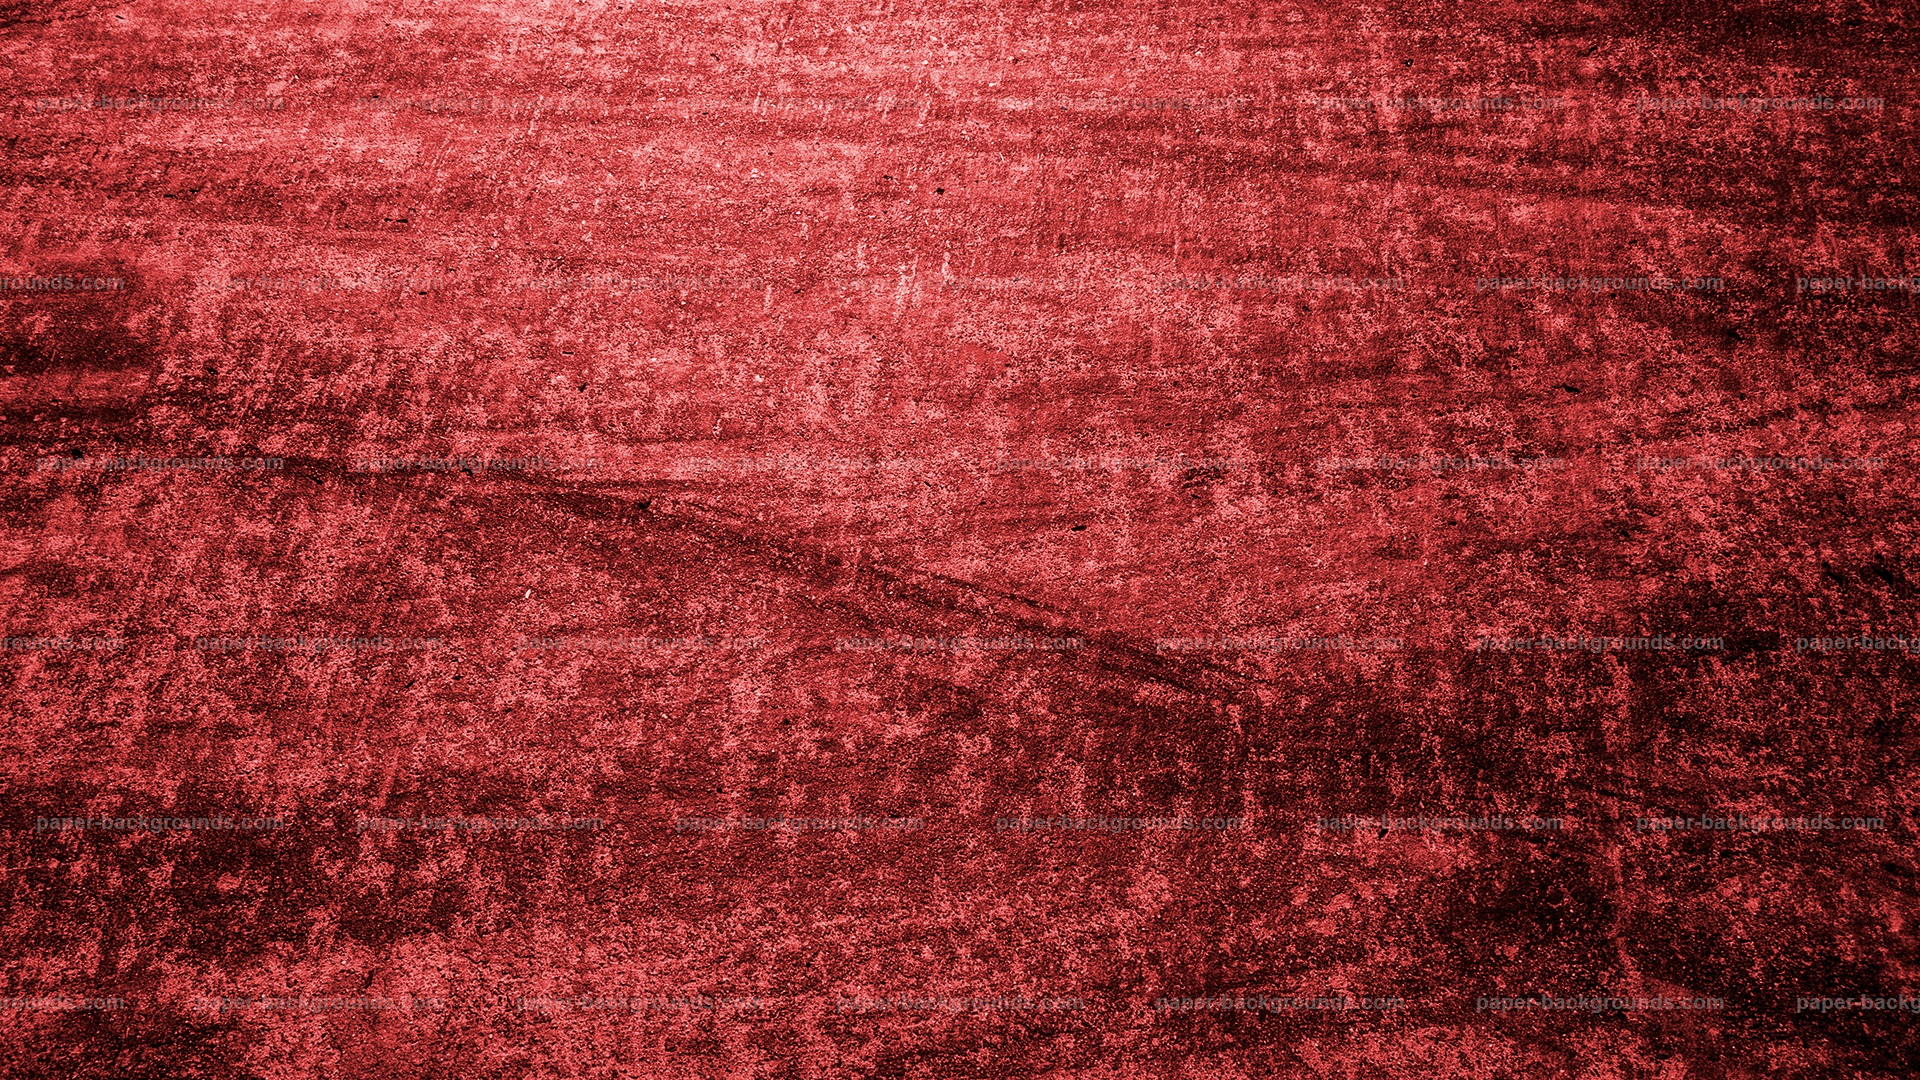 Red Grunge Concrete Texture HD 1920 x 1080p